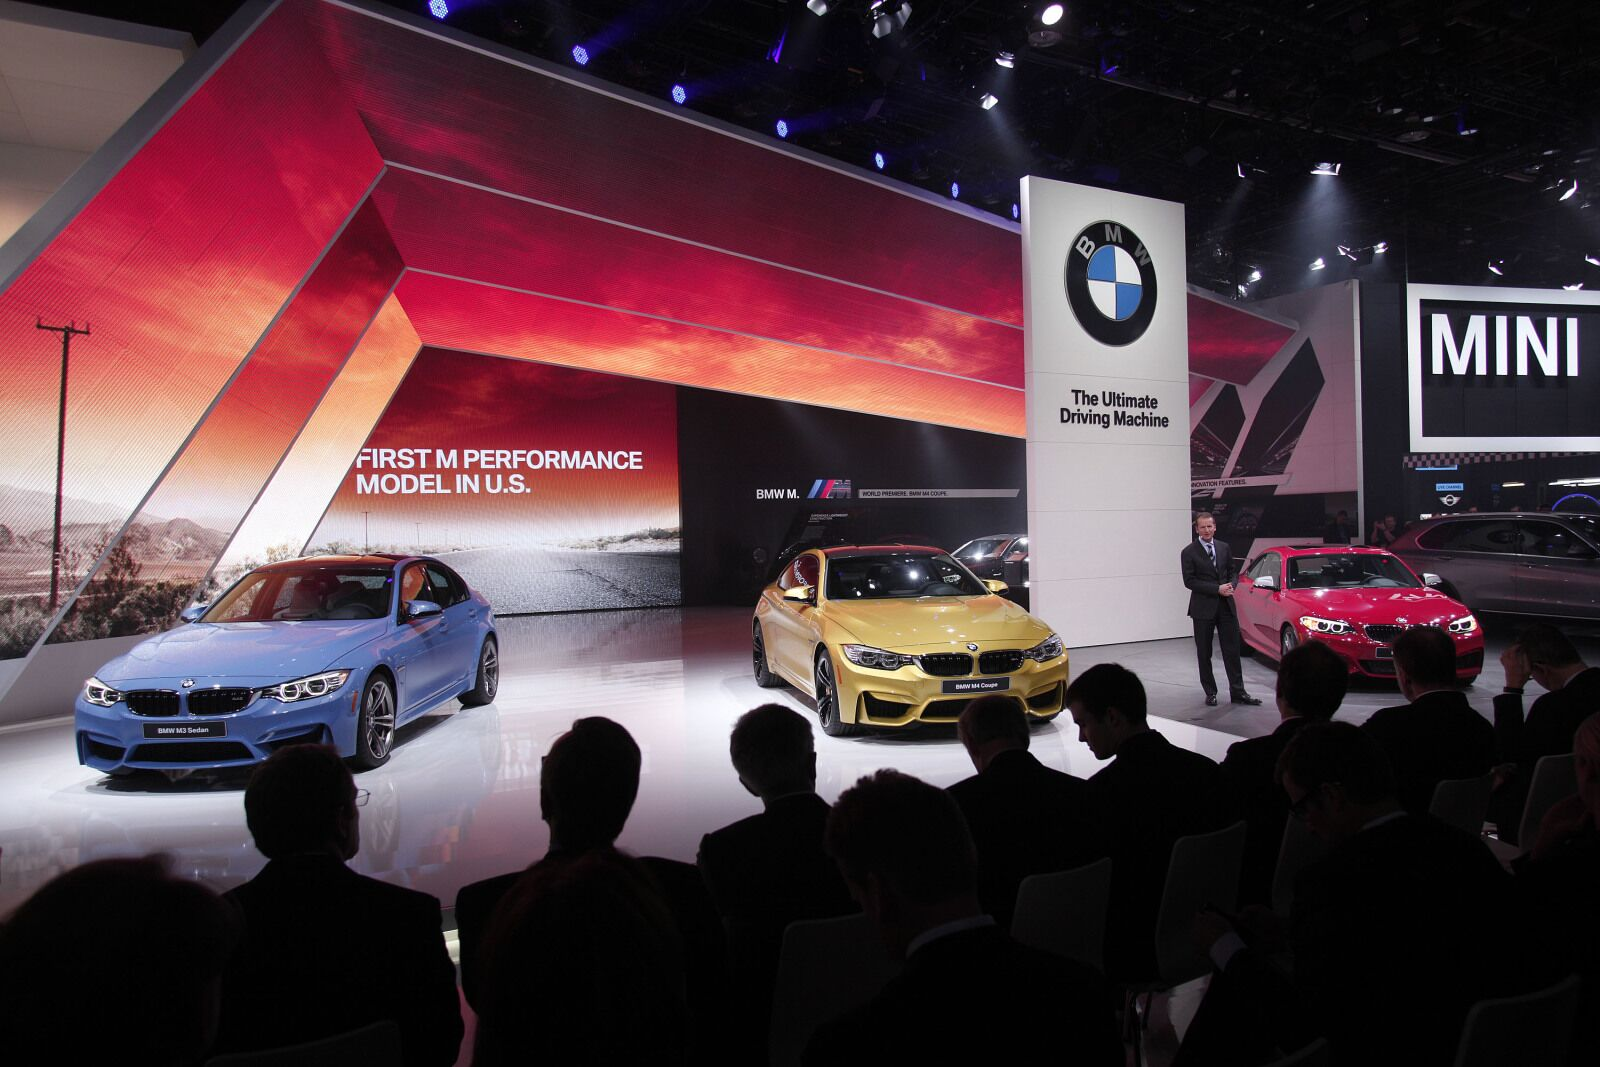 The Newest BMW M Model is a Fraud